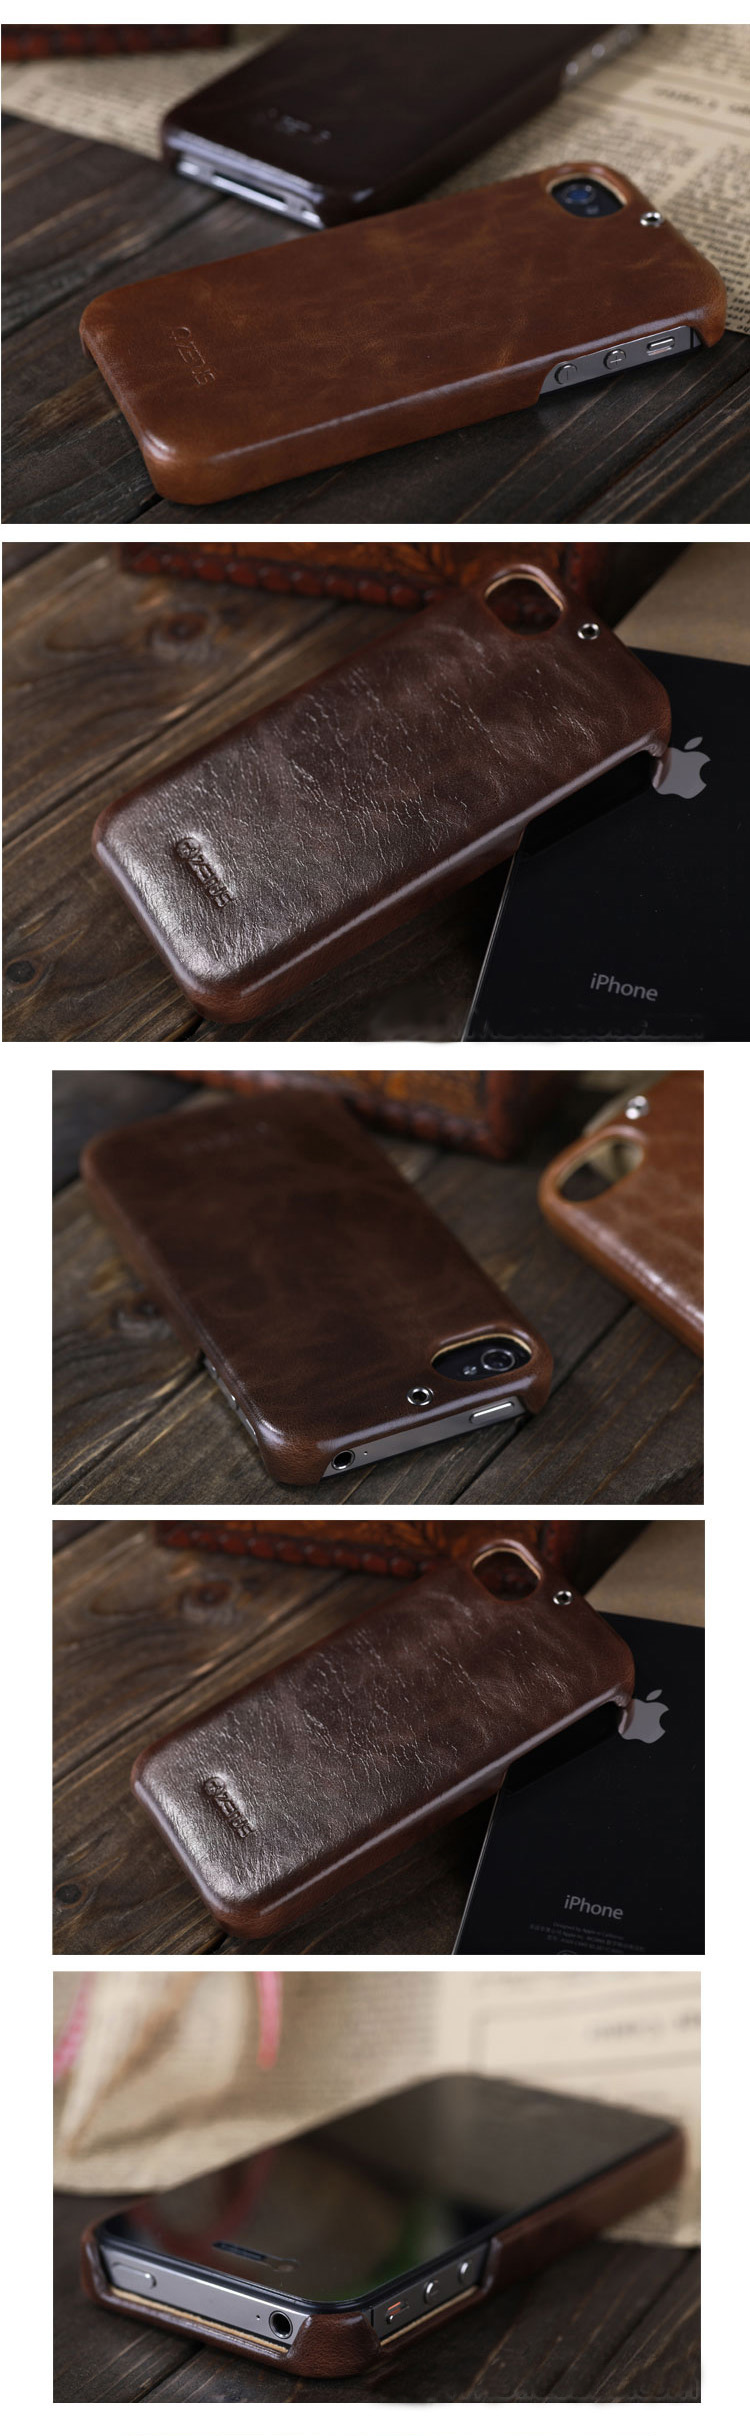 iPhone 4 4S Genuine Leather  Phone Case Skin - Zenus  - The Return to the King Series